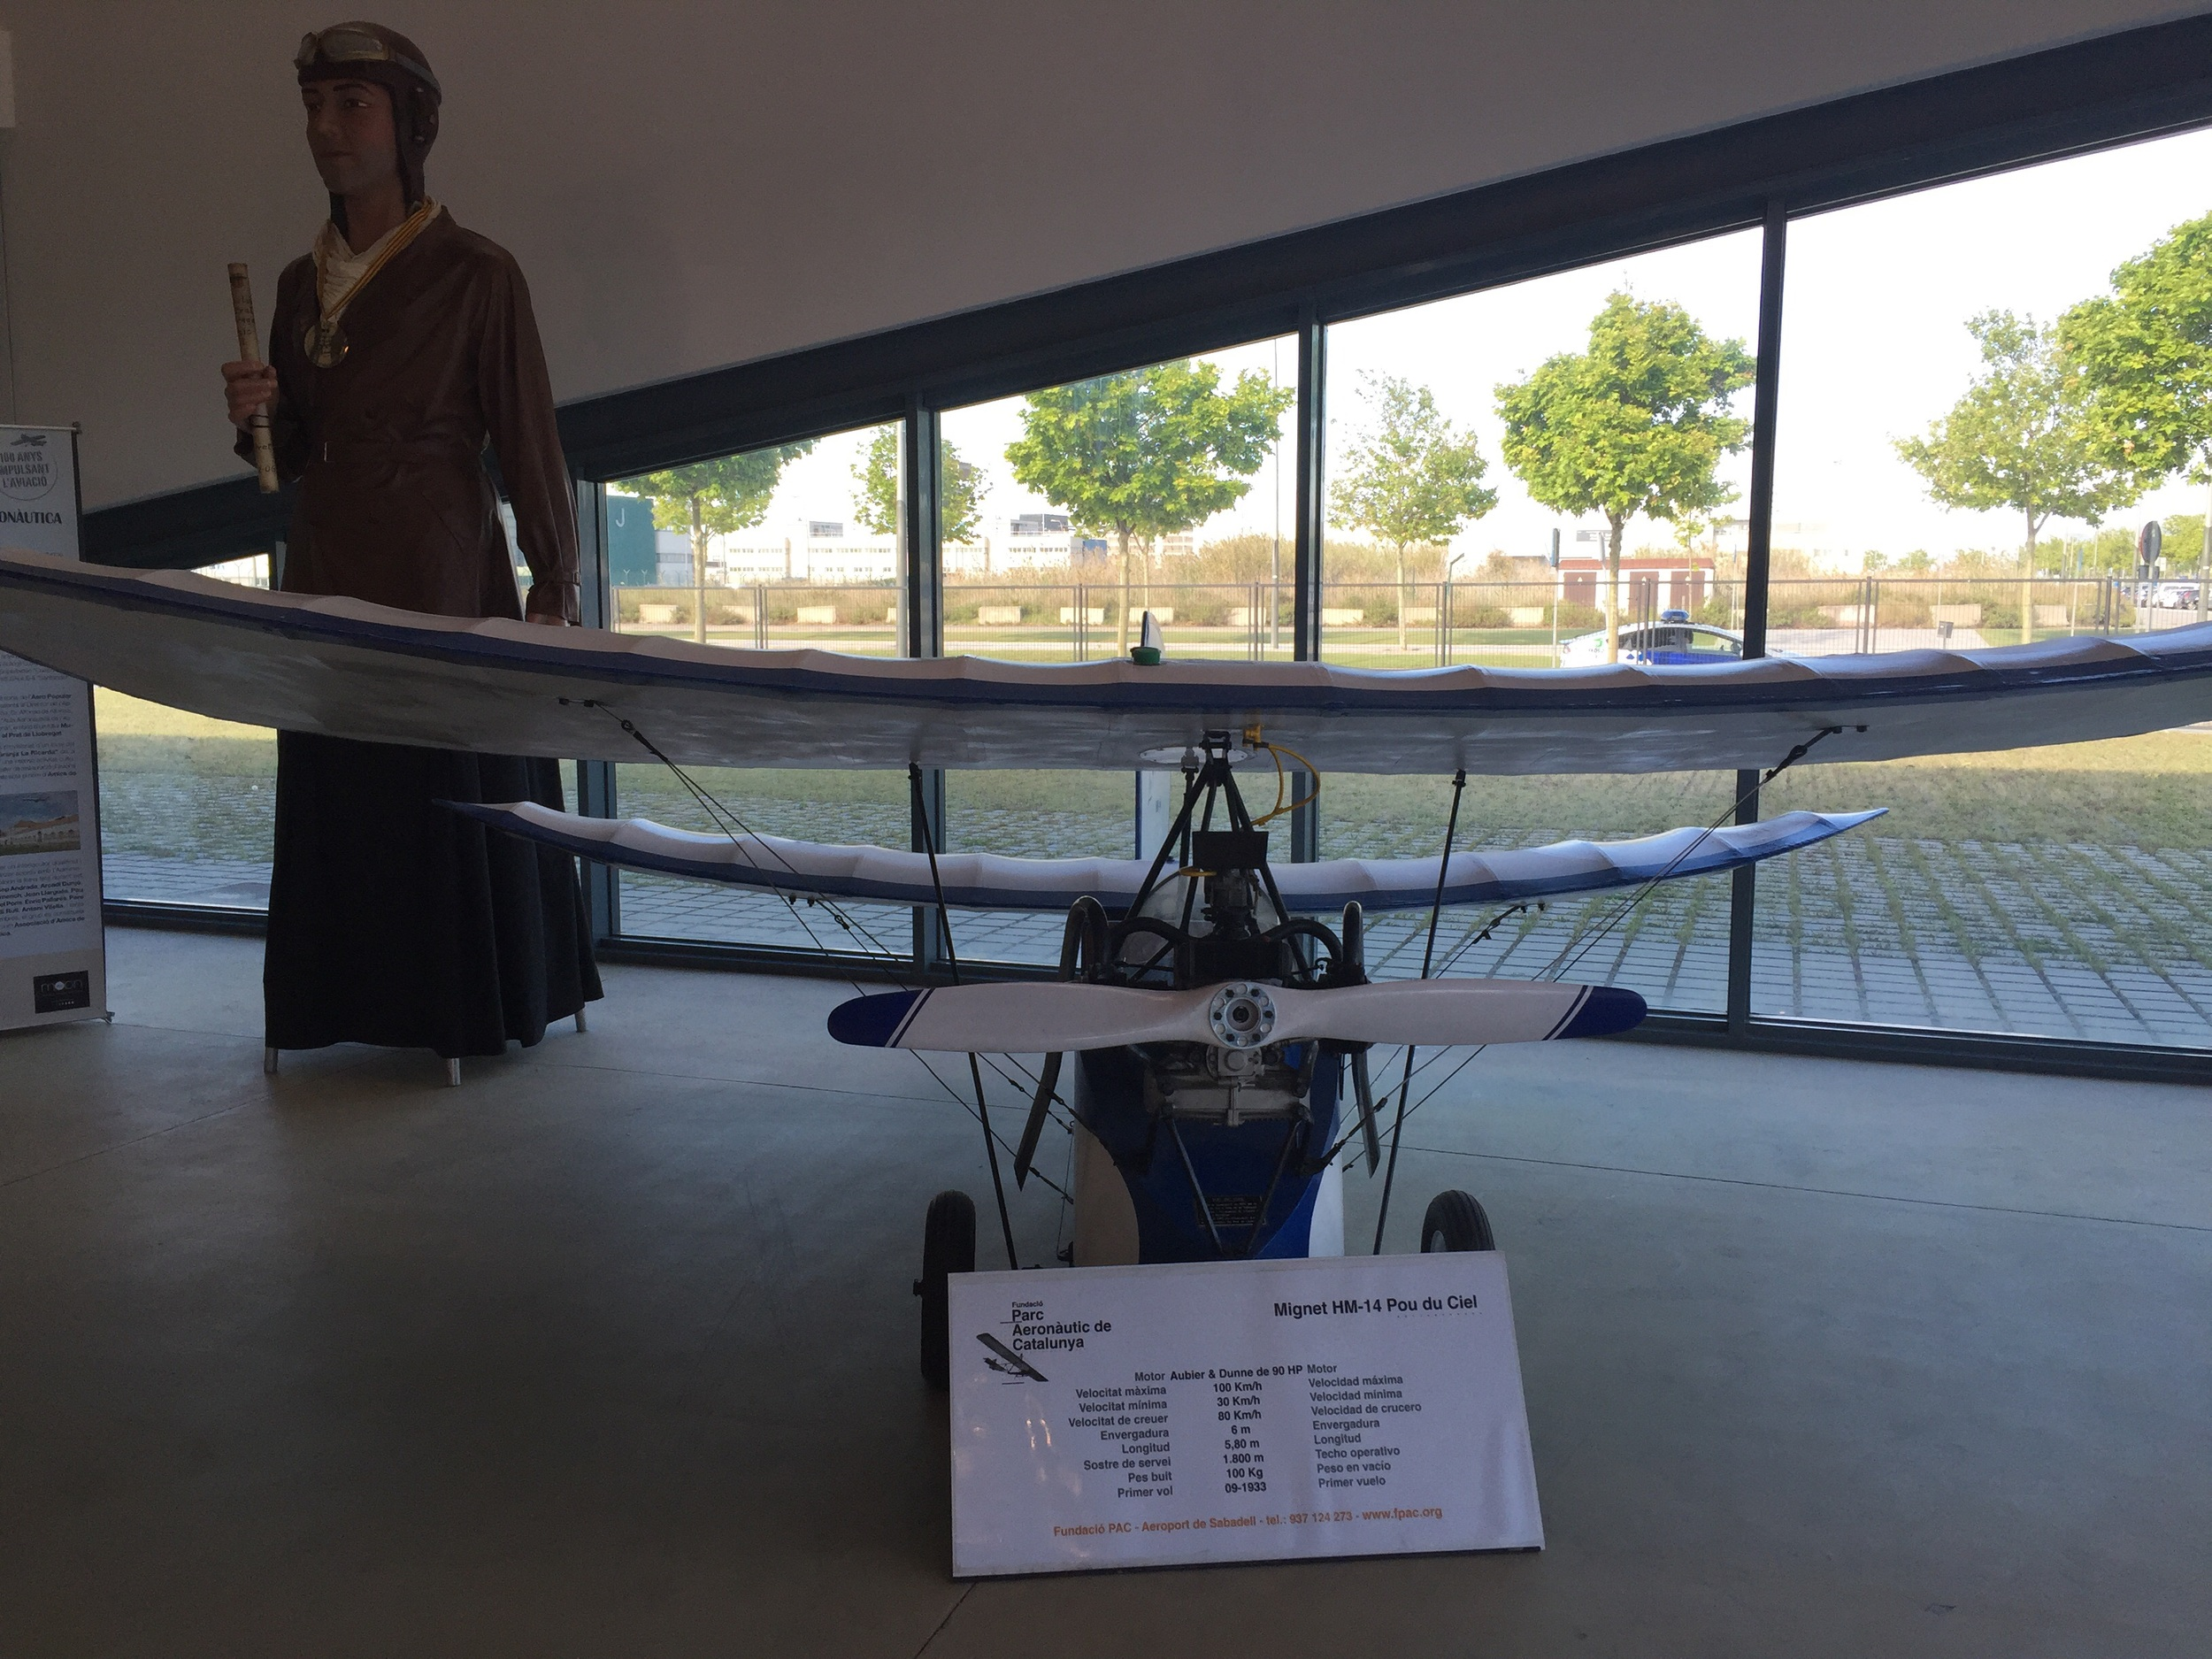 """The tiny aircraft in the foreground is a Mignet """"Pou du Ciel"""", literally """"Flying flea"""", a 1930s design that really caught my eye. On the background is a traditional """"gegant"""", typical of Catalonia's folklore, in aviator's costume."""